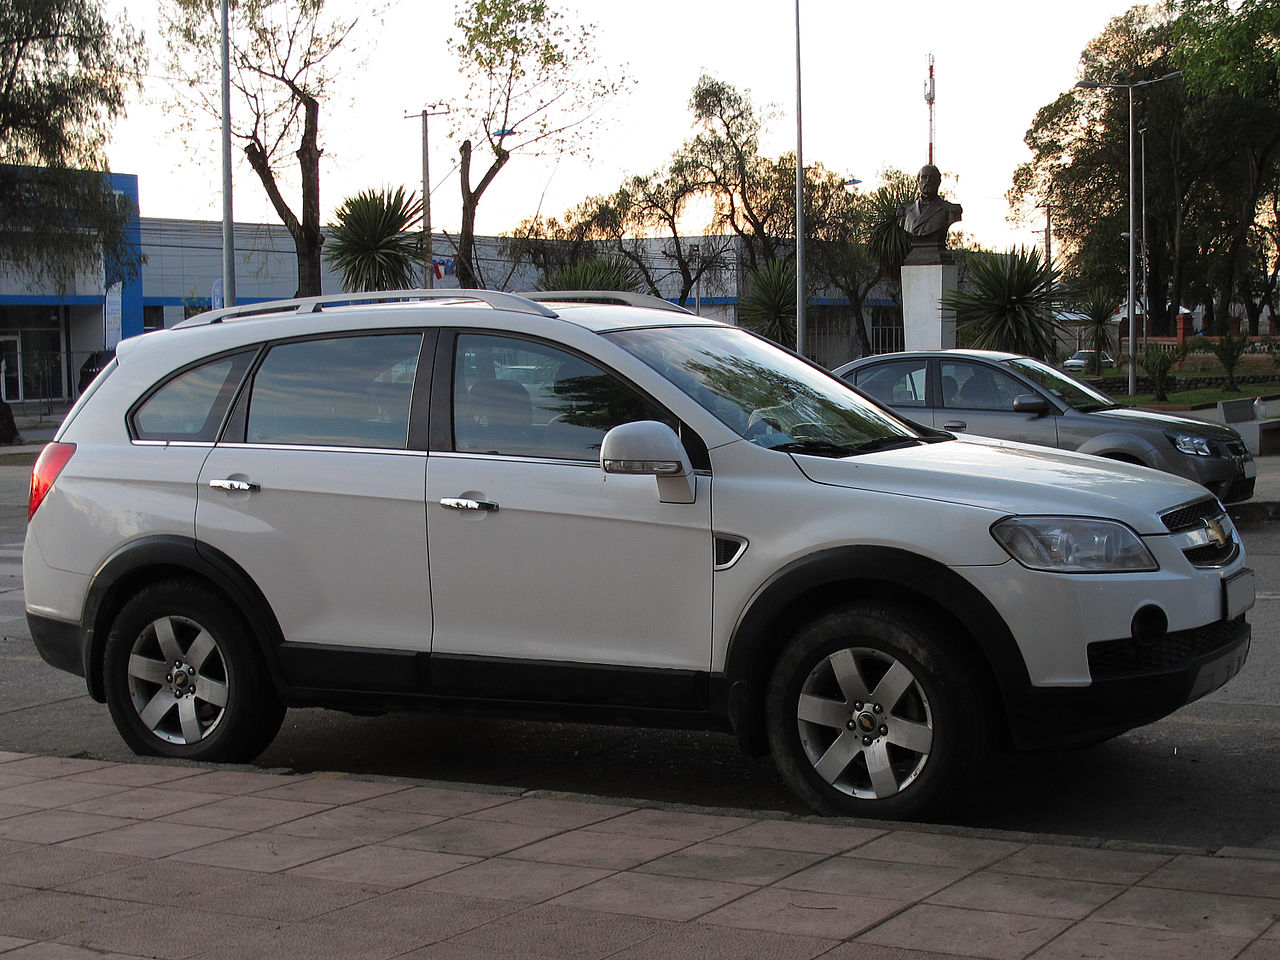 All Chevy chevy captiva awd : File:Chevrolet Captiva 2.0d LTZ AWD 2007 (15543751781).jpg ...